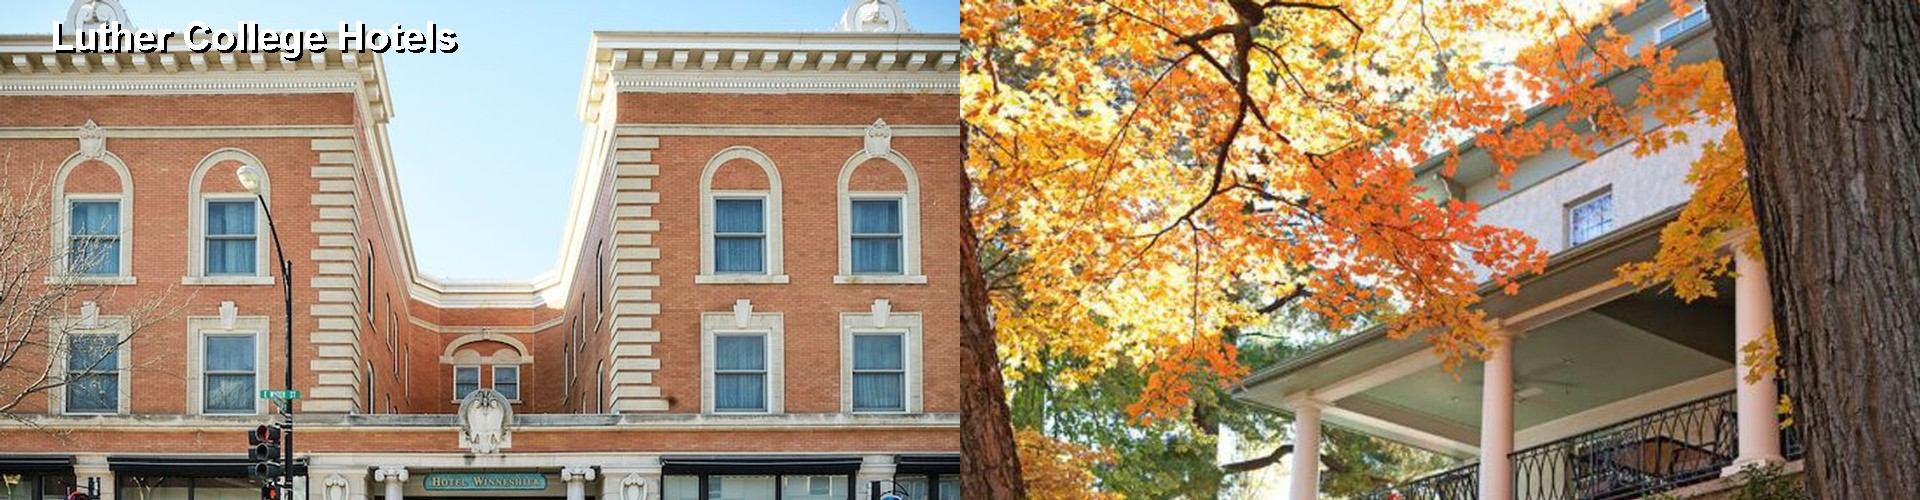 4 Best Hotels Near Luther College